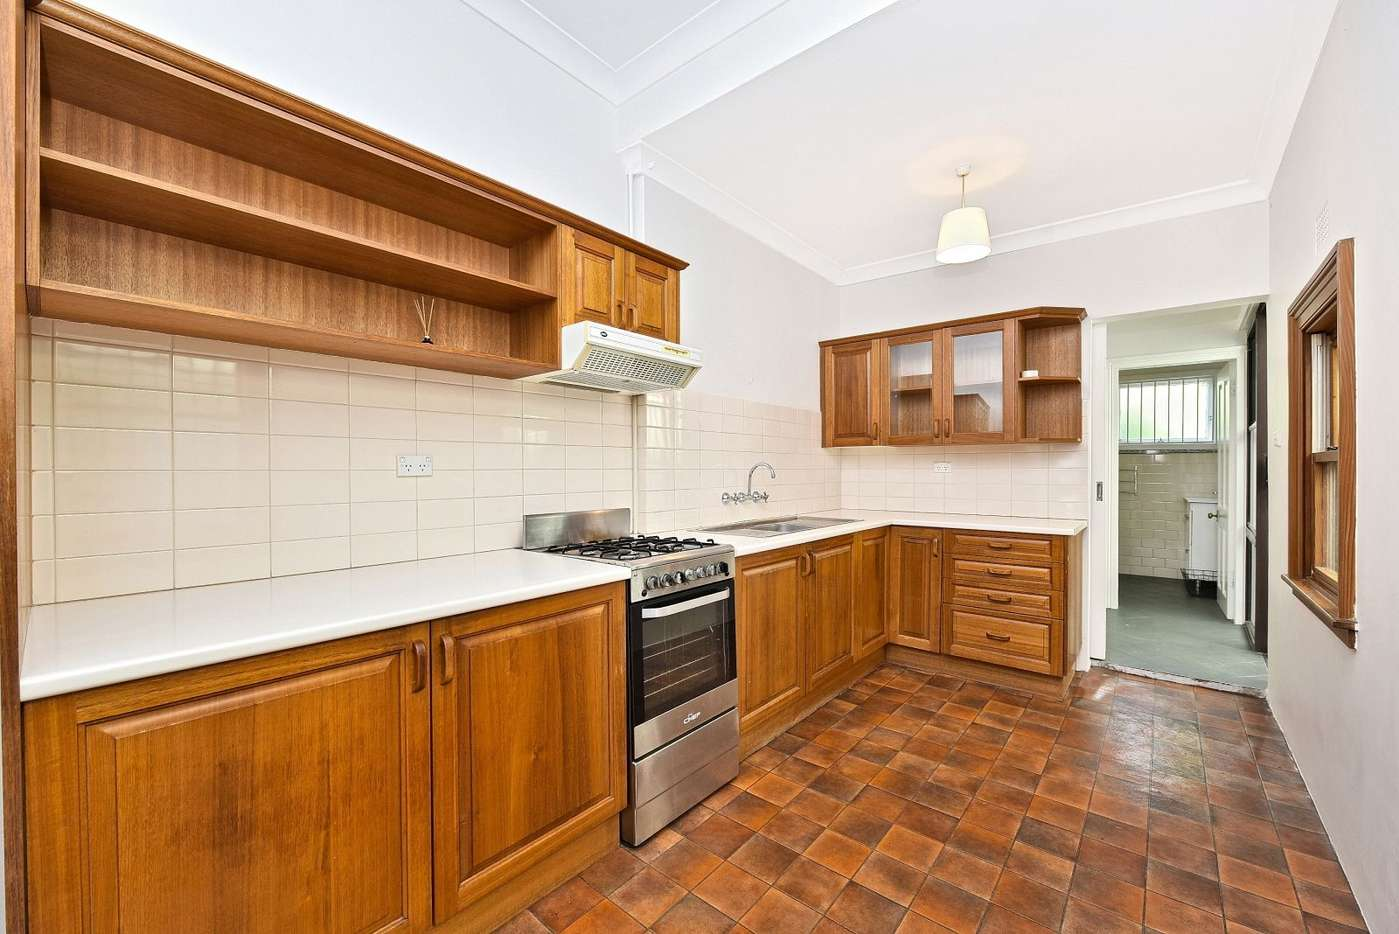 Main view of Homely house listing, 40 Myrtle Street, Chippendale, NSW 2008